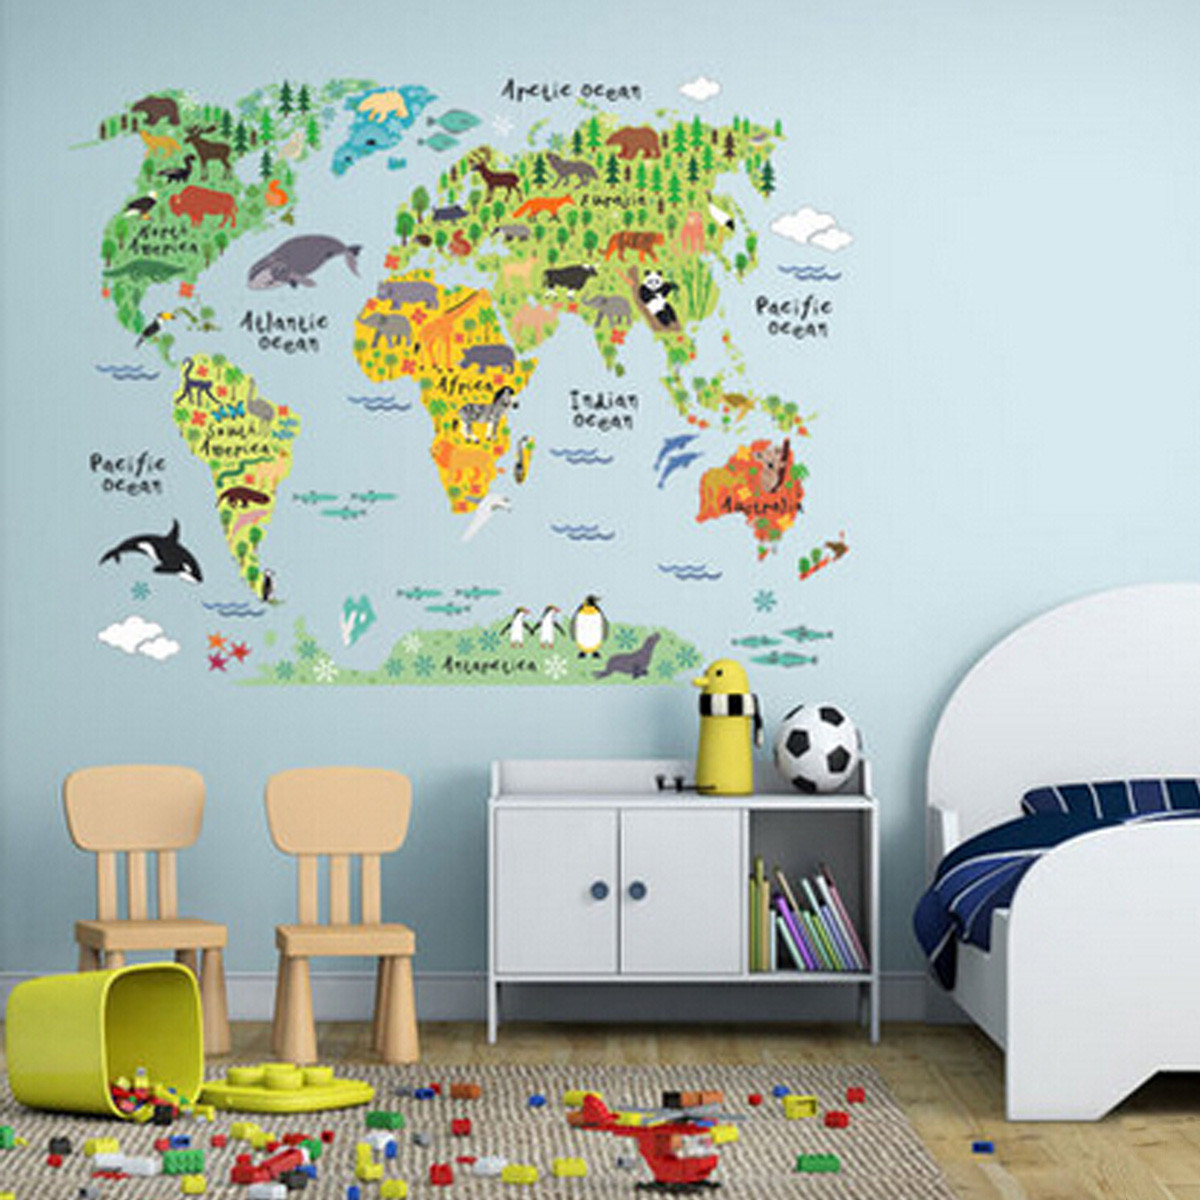 6090cm pvc colorful animal travel world map kids room decor wall sticker wallpaper geographic nursery home decals in wall stickers from home garden on